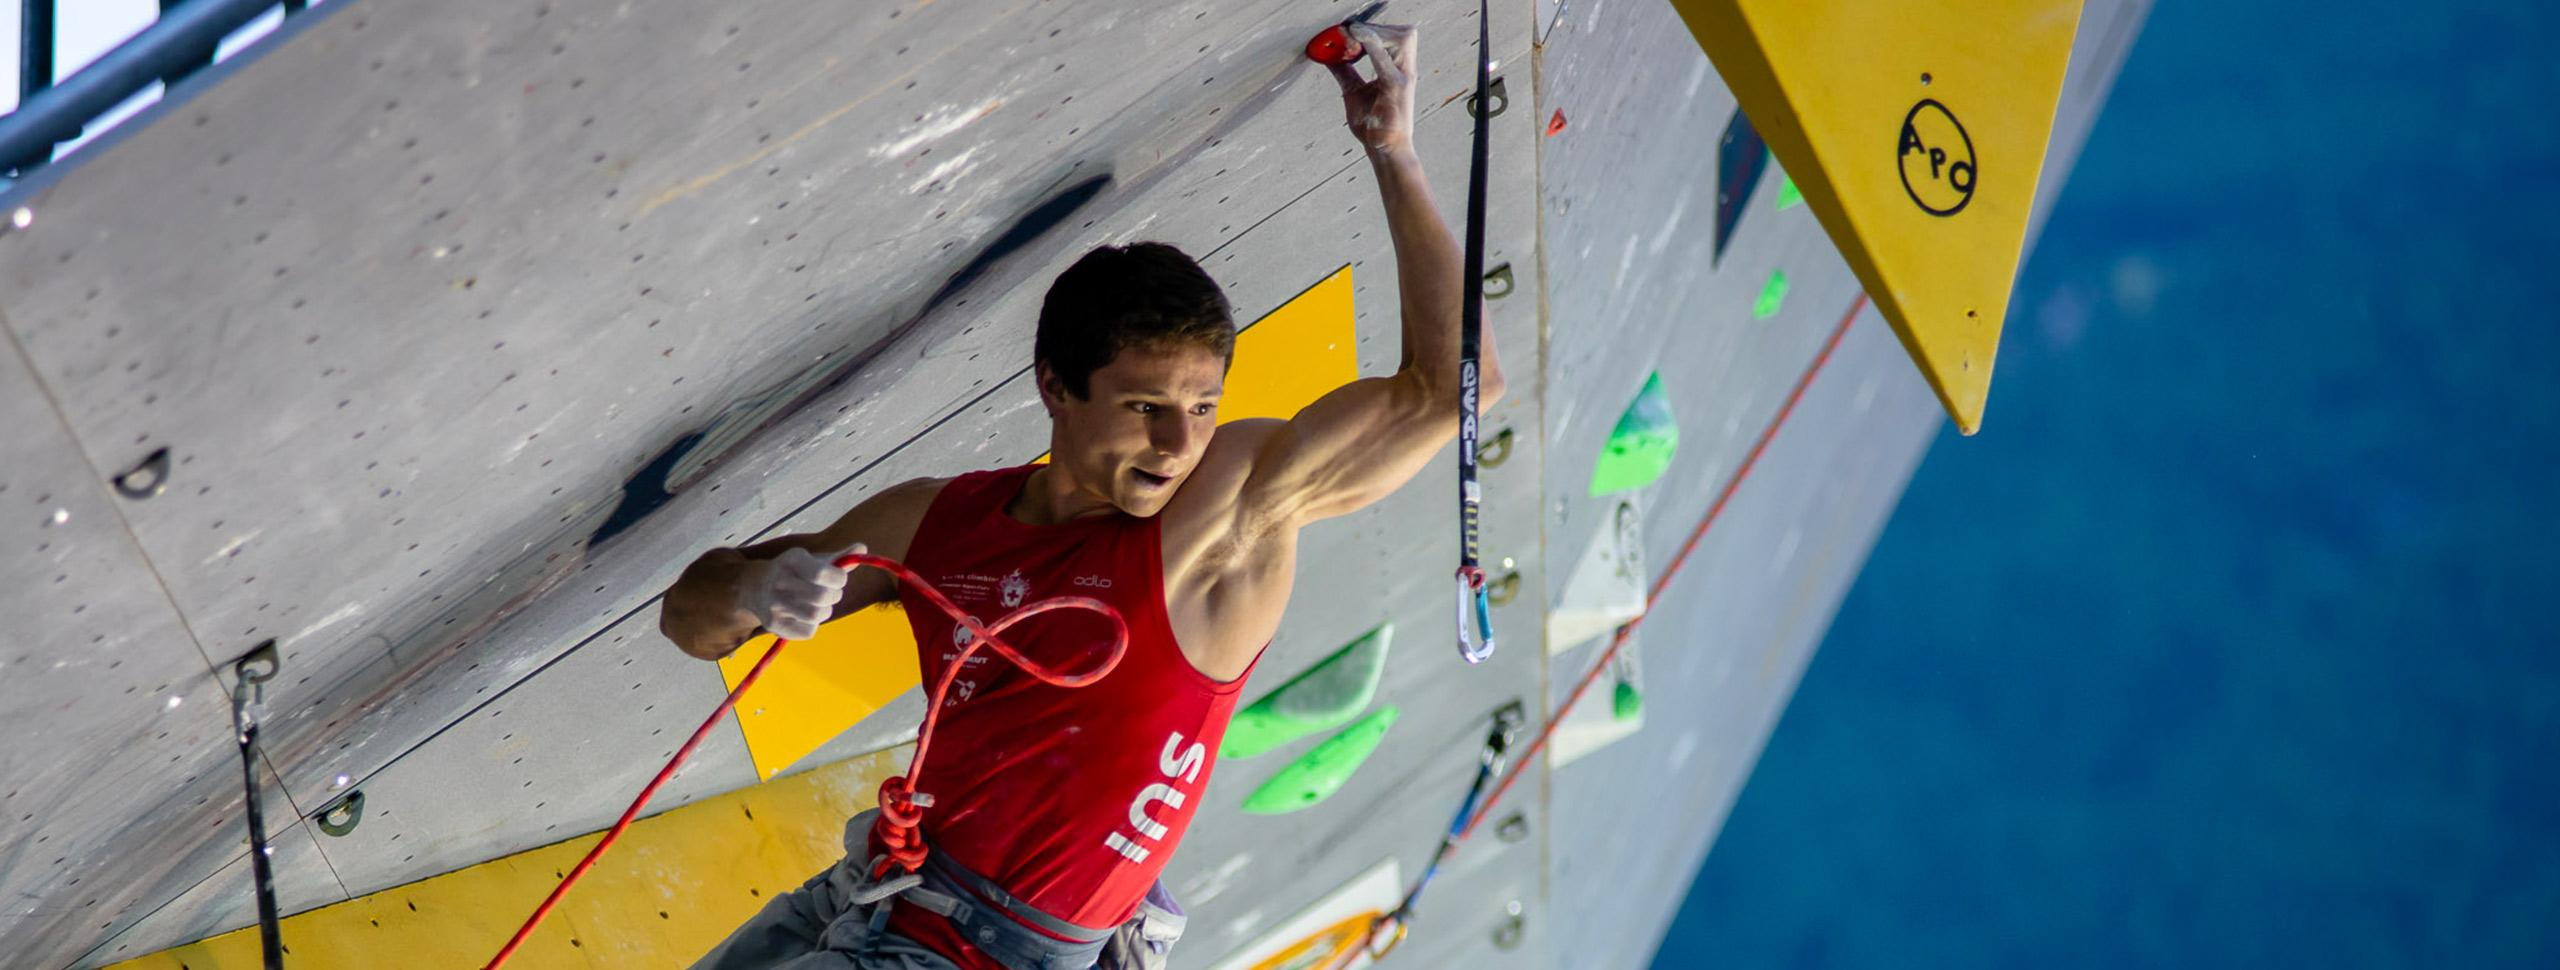 IFSC World Cup Briançon to be Broadcast Internationally